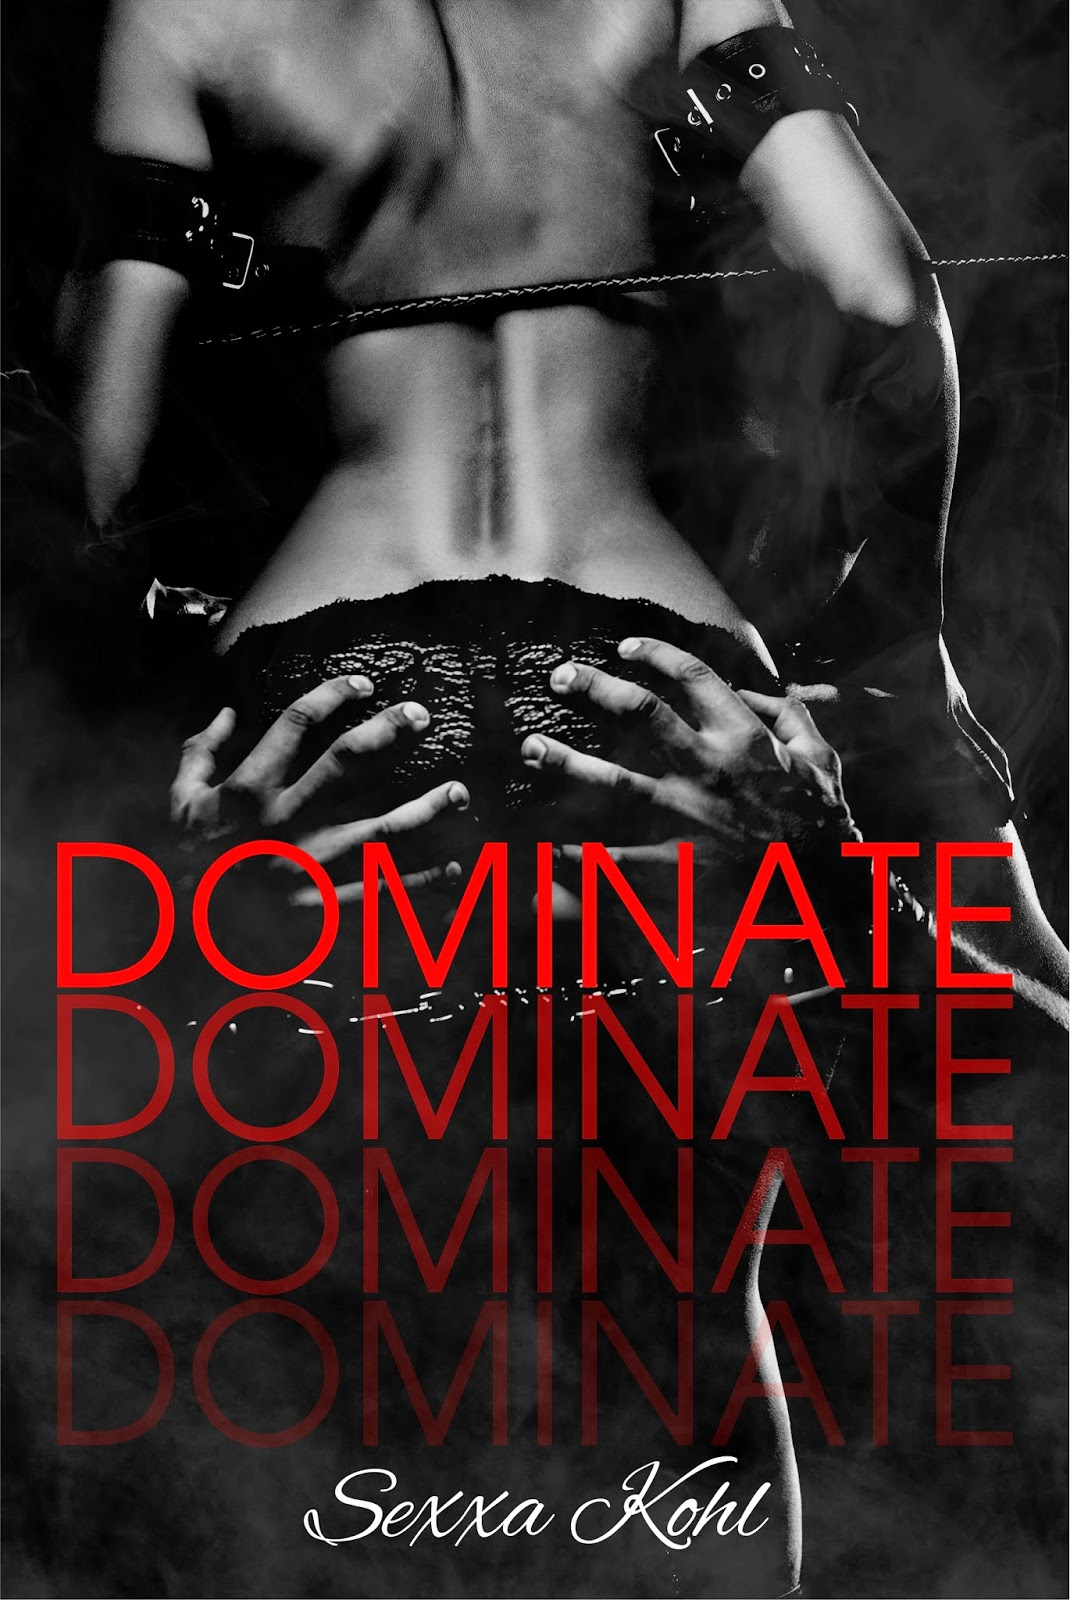 Dominate by Sexxa Kohl